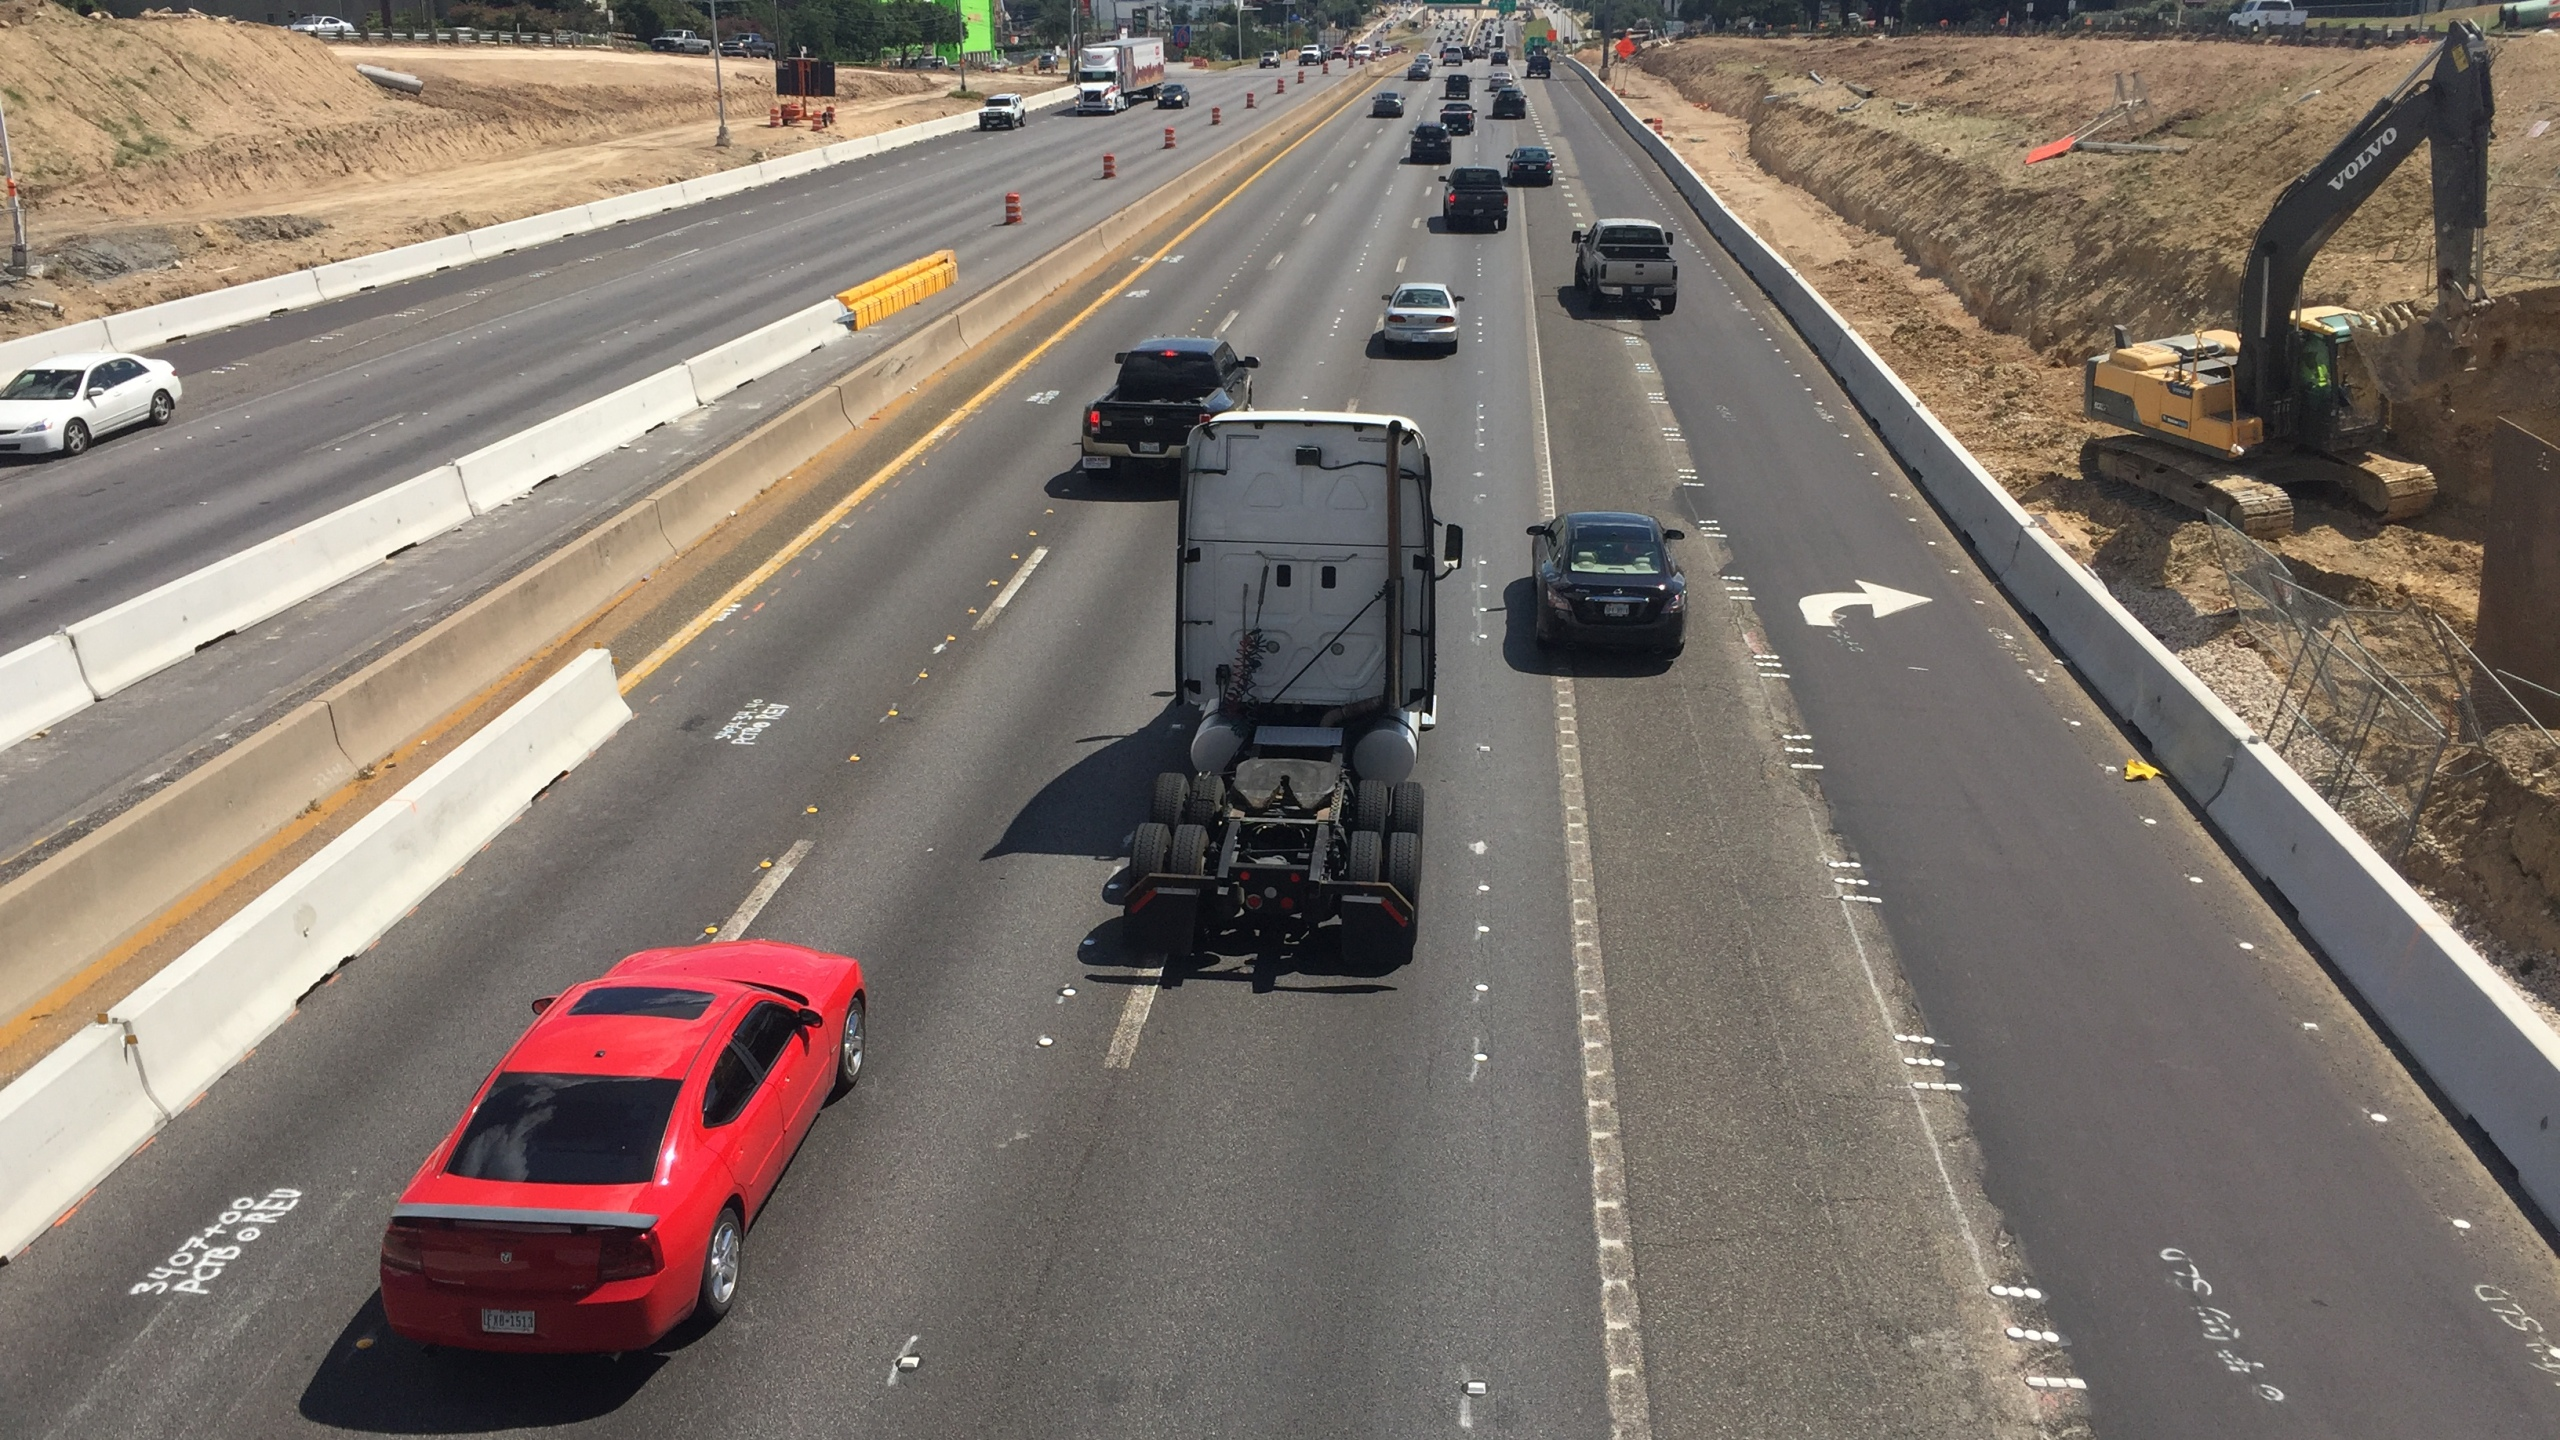 I35 lane striping issues_509446